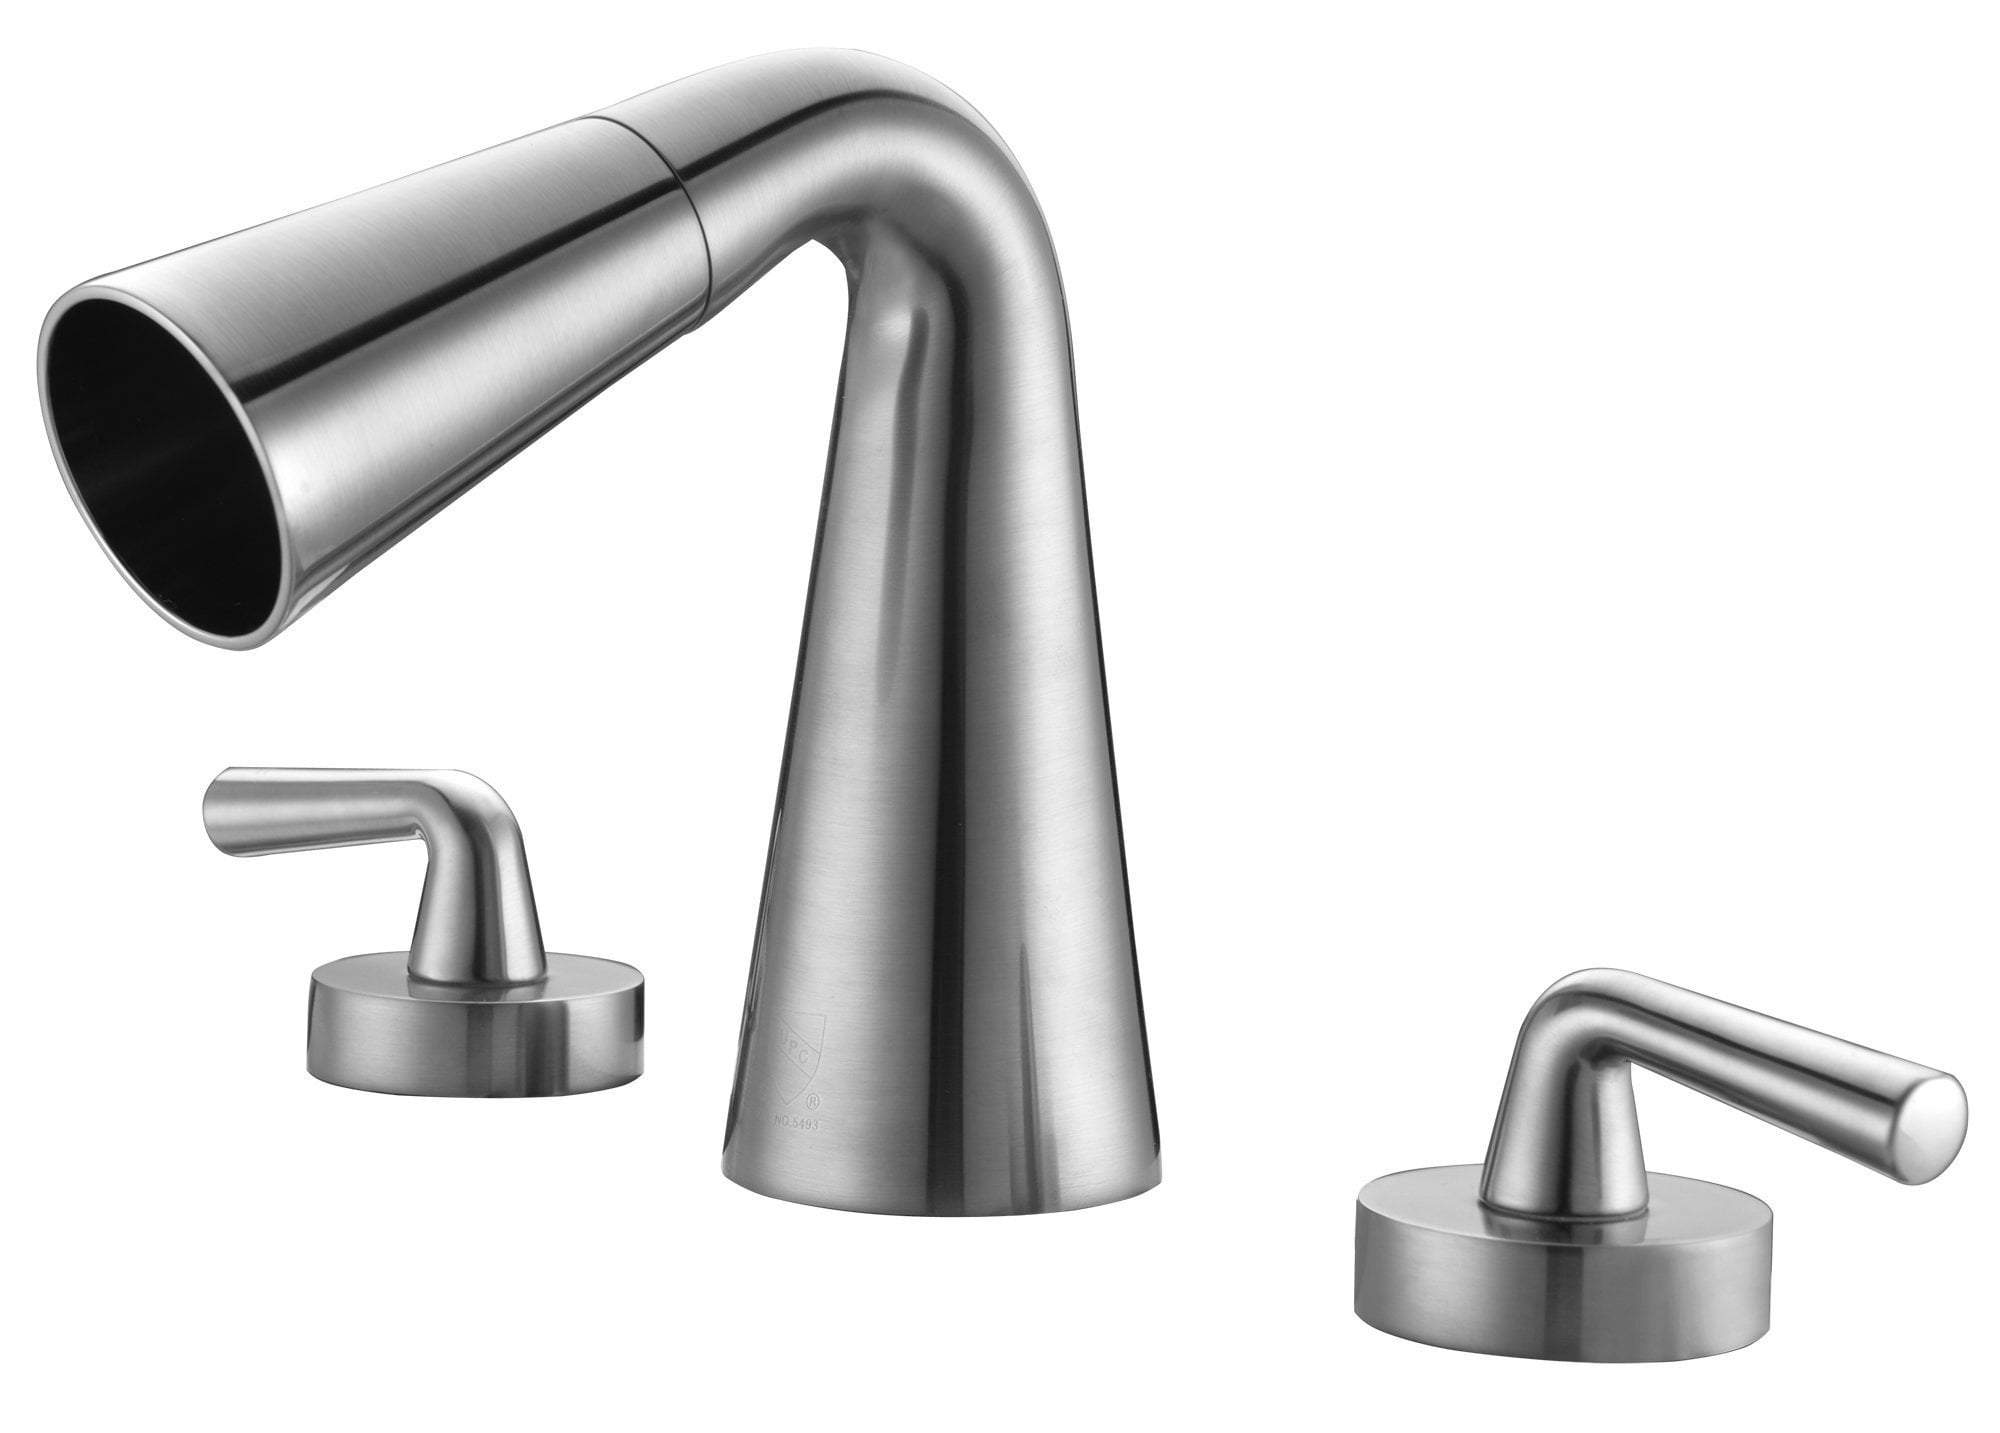 Brushed Nickel Widespread Cone Waterfall Bathroom Faucet